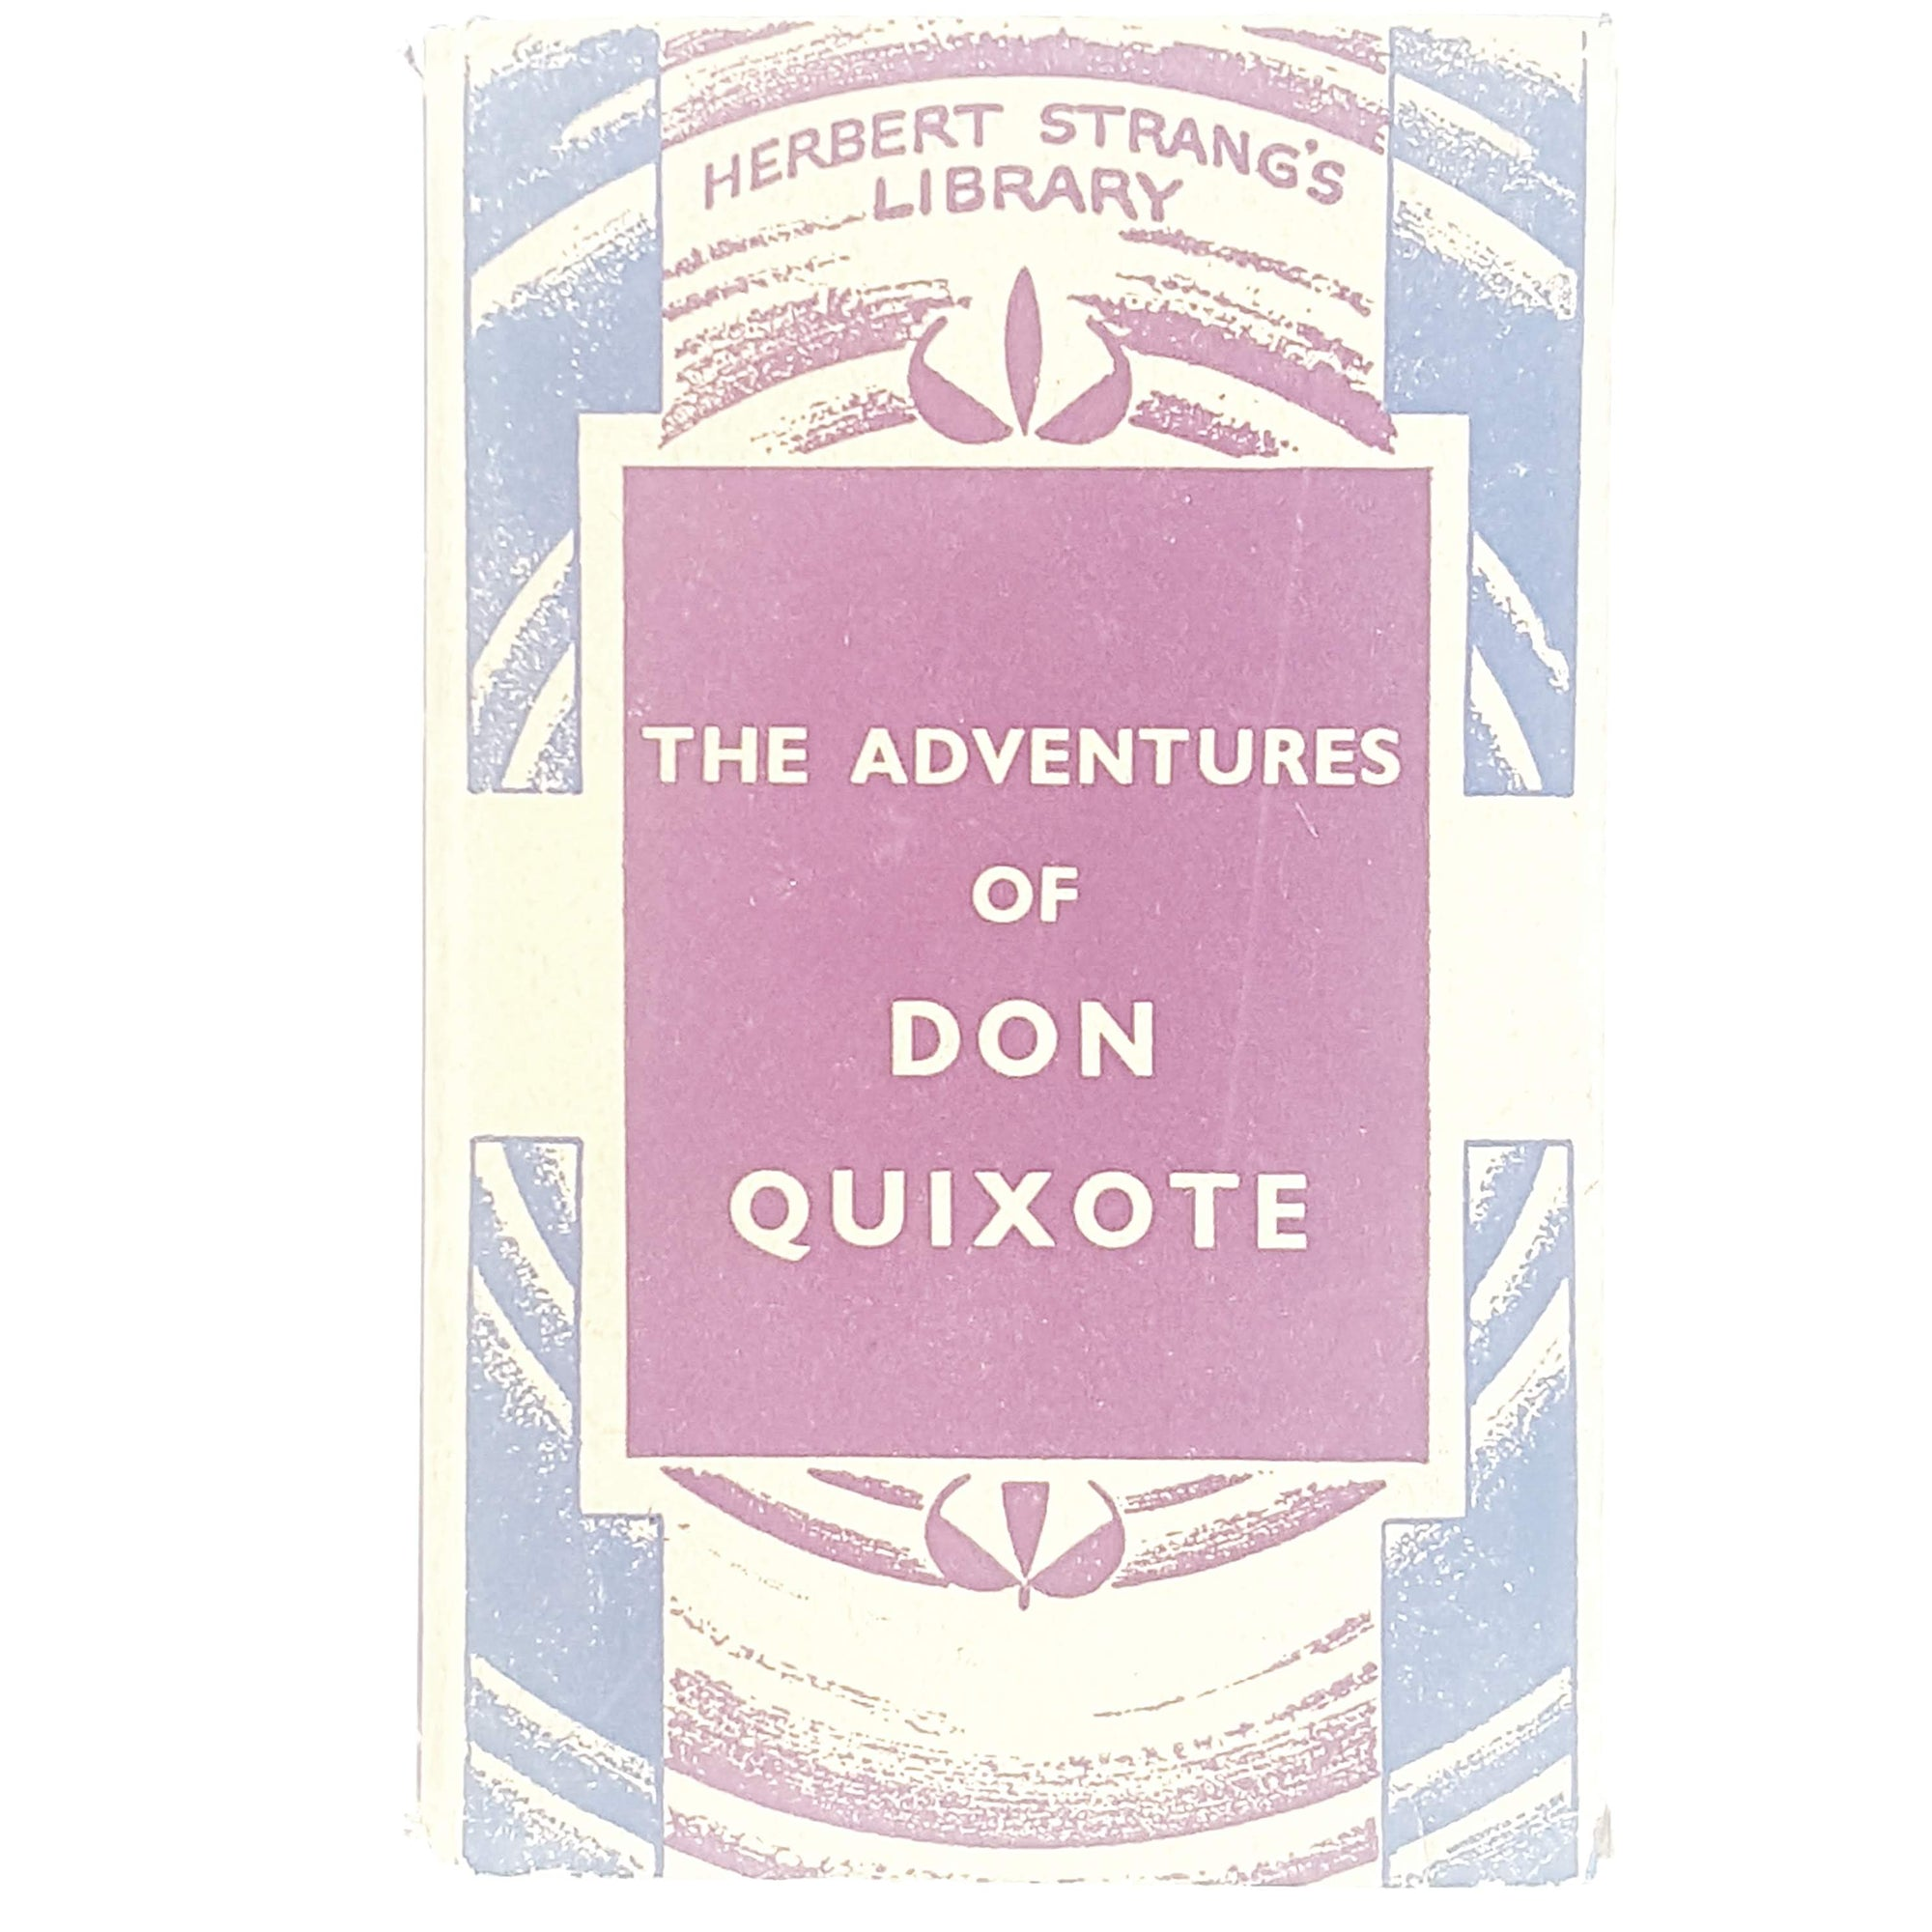 The Adventures of Don Quixote by Miguel de Cervantes 1938